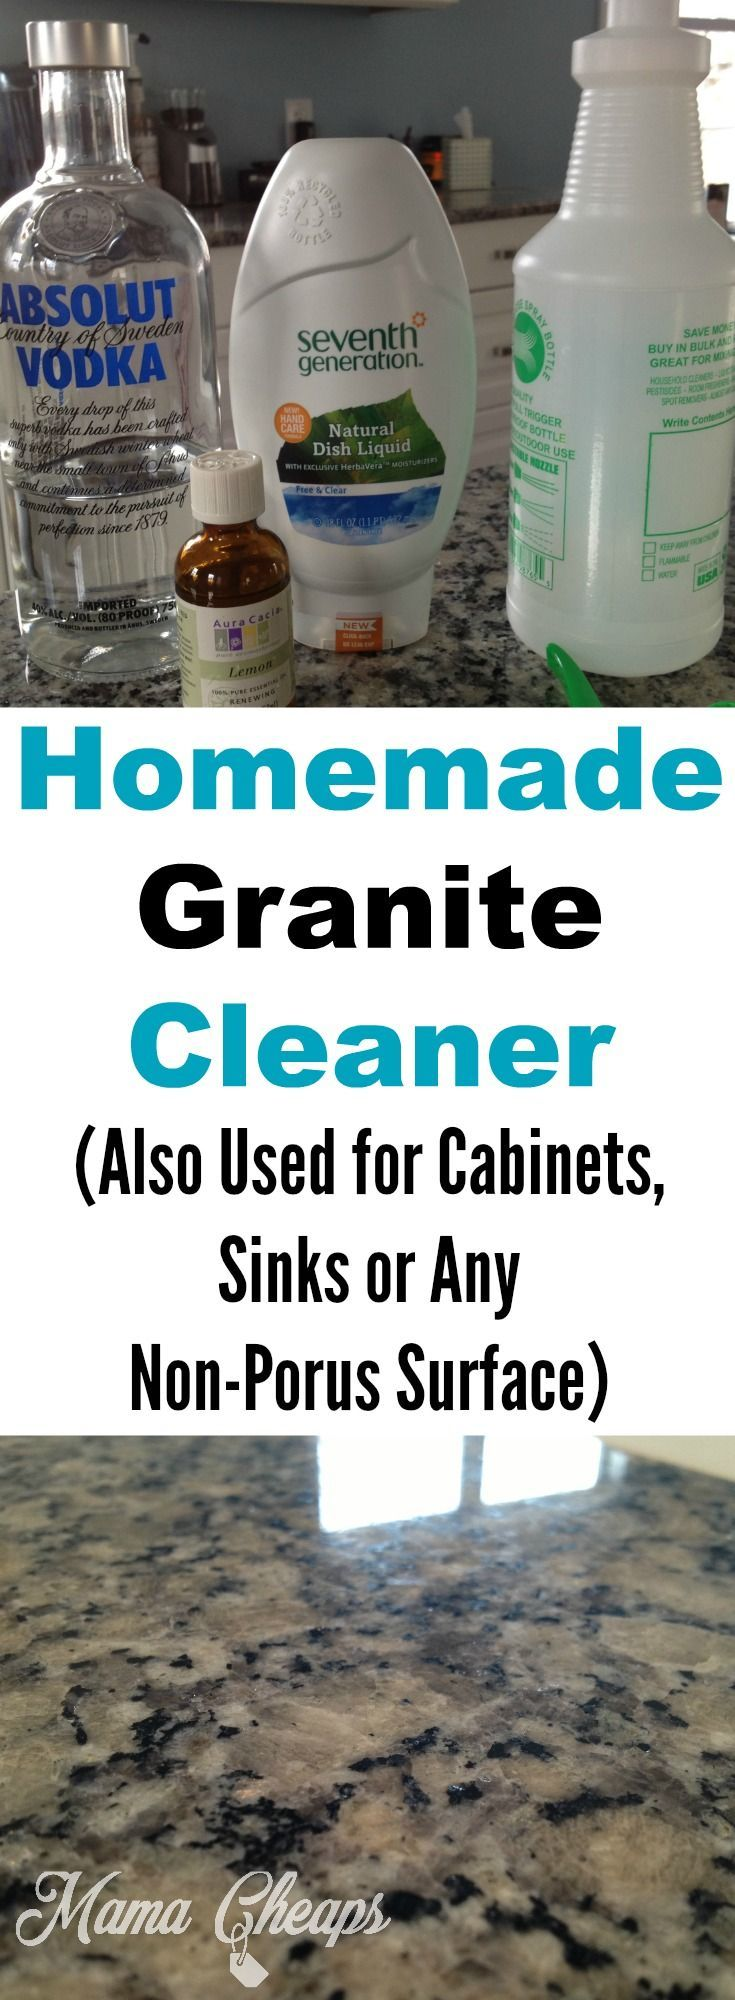 Homemade Granite Cleaner on the Cheap from /MamaCheaps/ http://bit.ly/2es9T8N